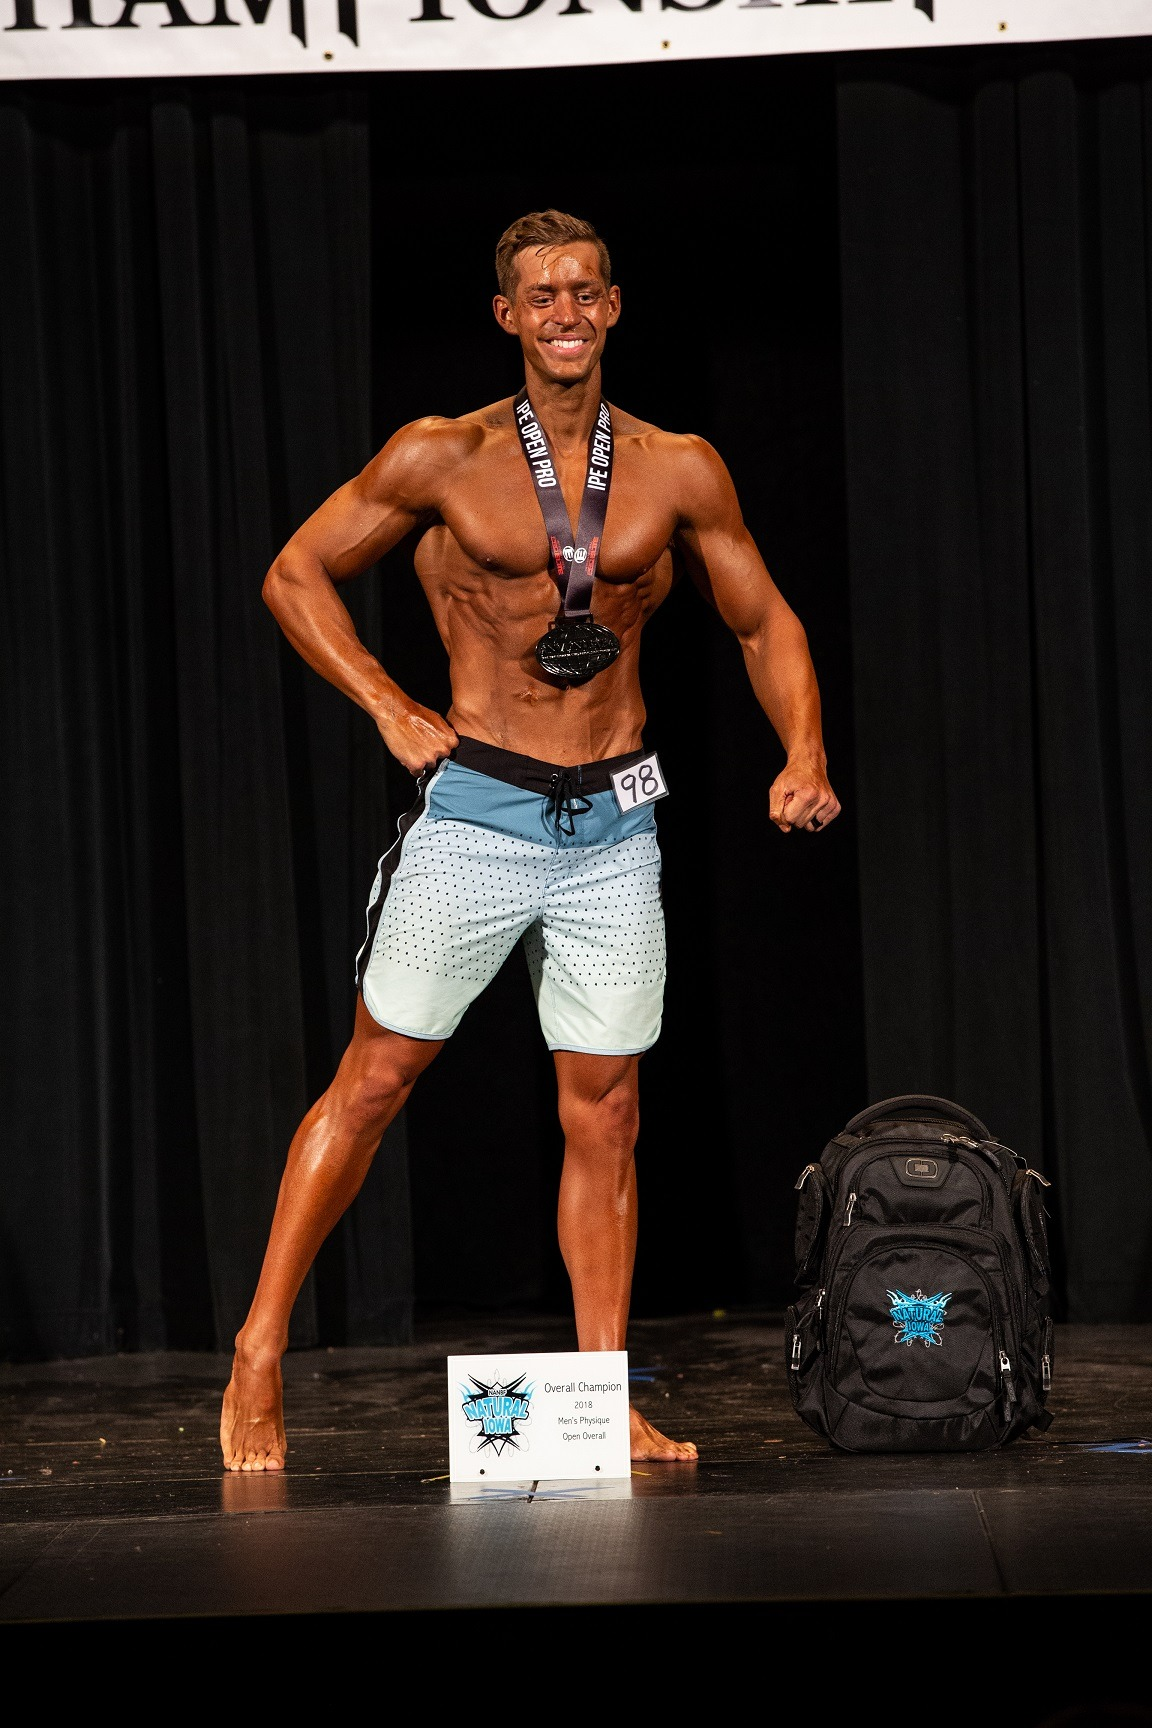 NATURAL IOWA COMPETITOR PROFILE: John Worley